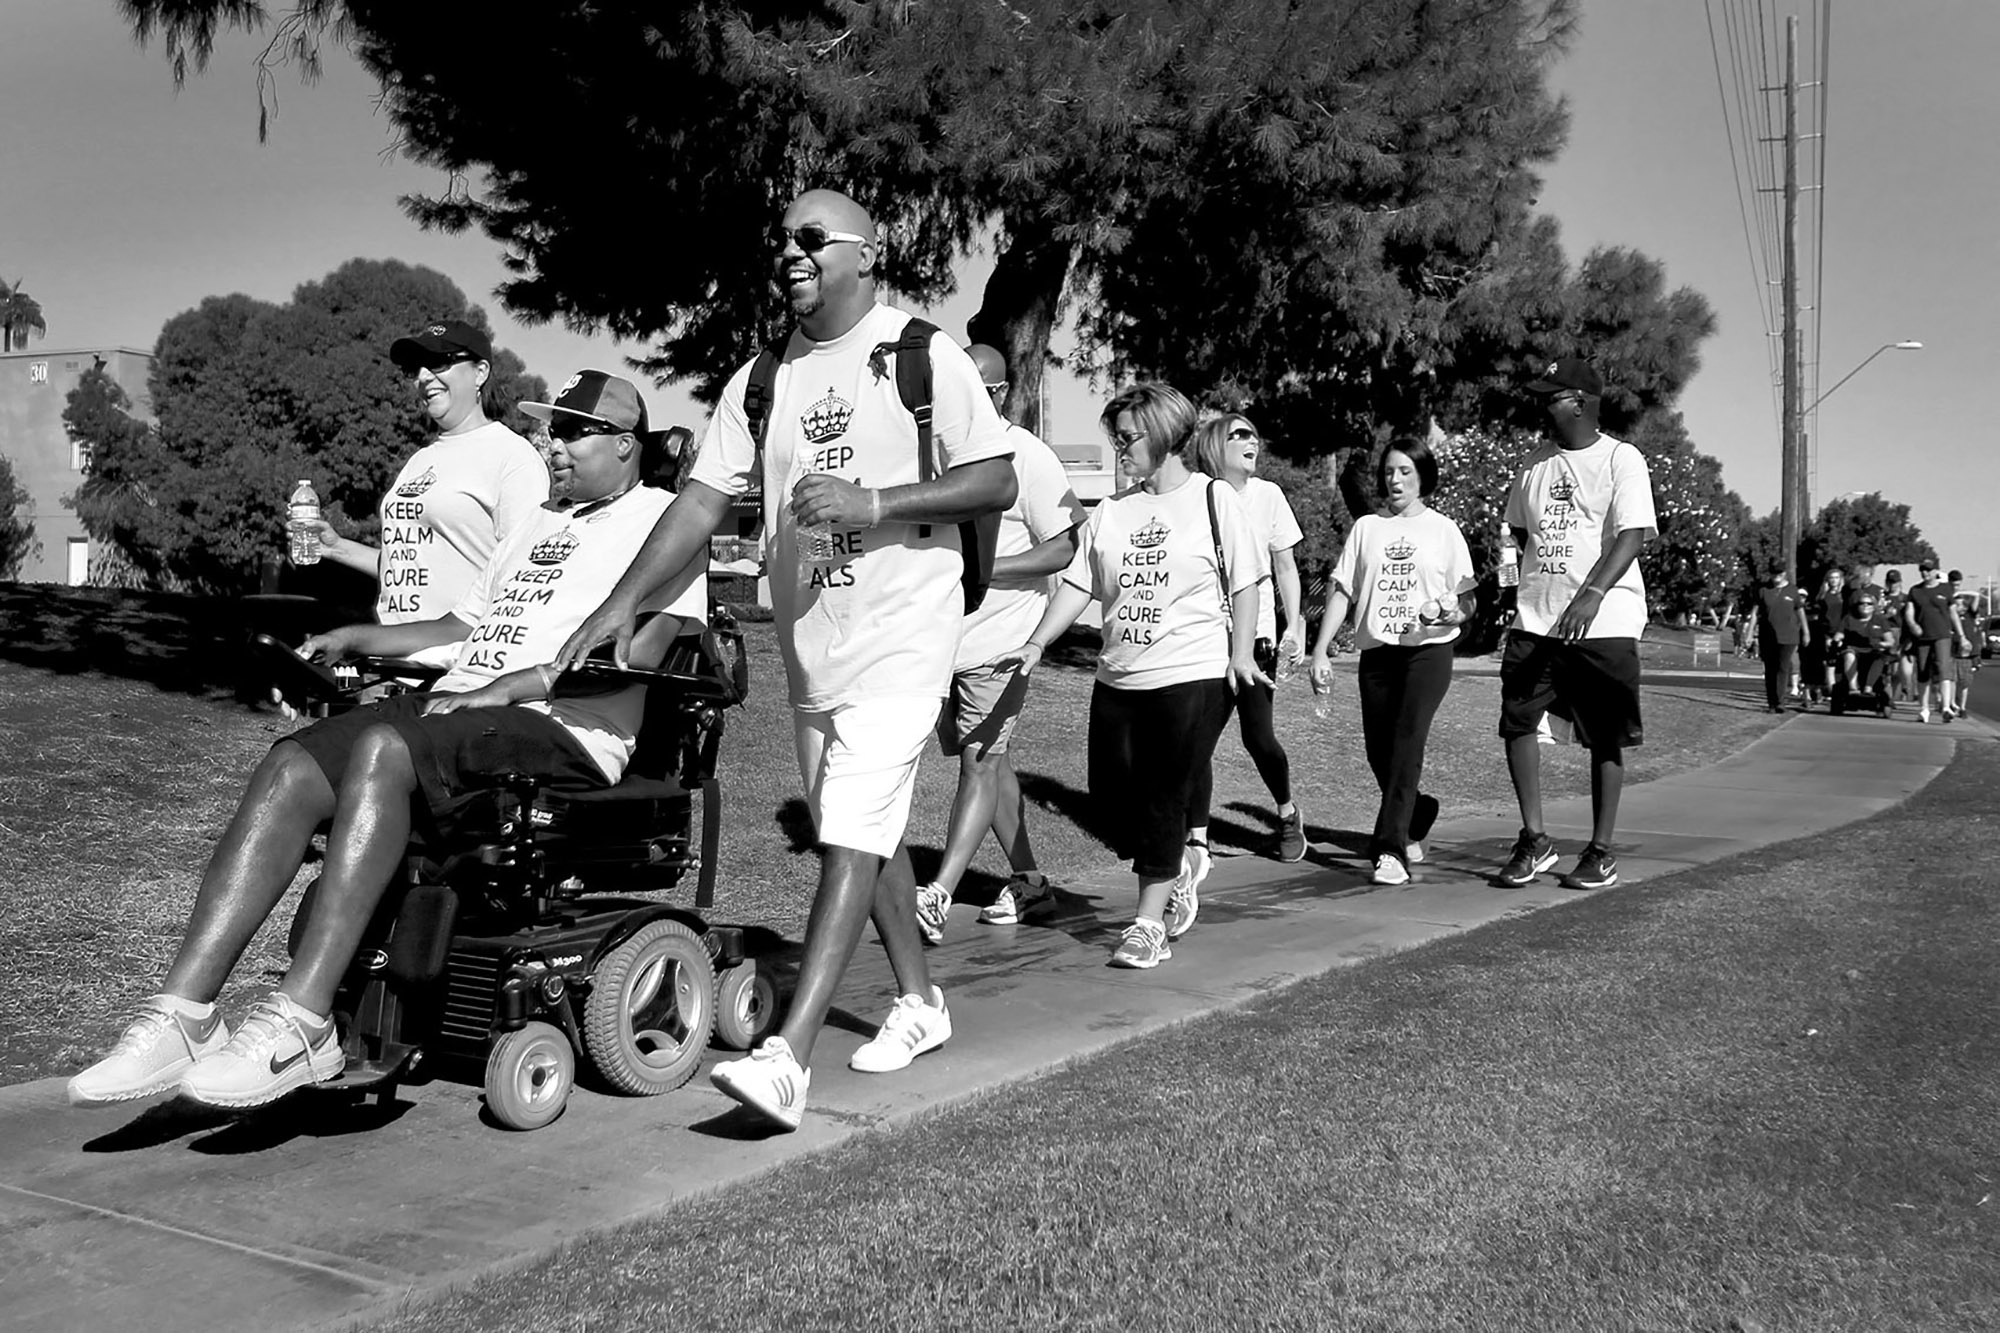 Mike drives alongside his former housemate Decarus Bennett, Rene and other supporters during the annual Walk to Defeat ALS in Scottsdale, Arizona.